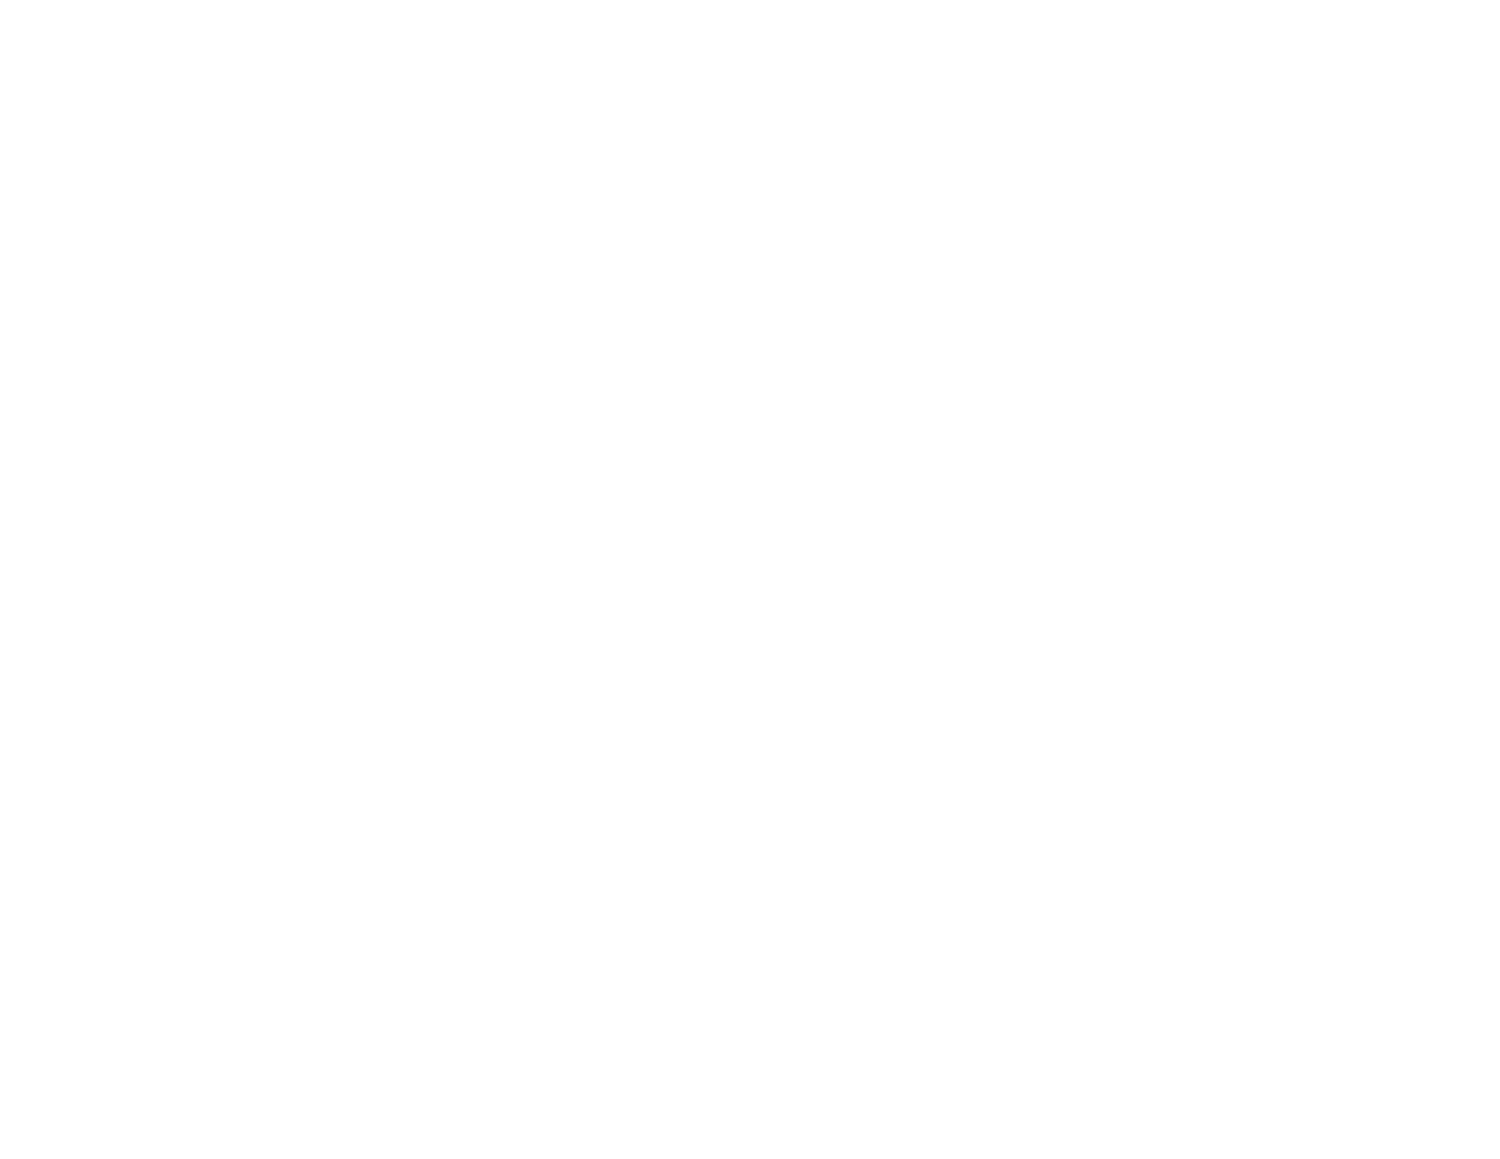 Jeremy Scott Photography